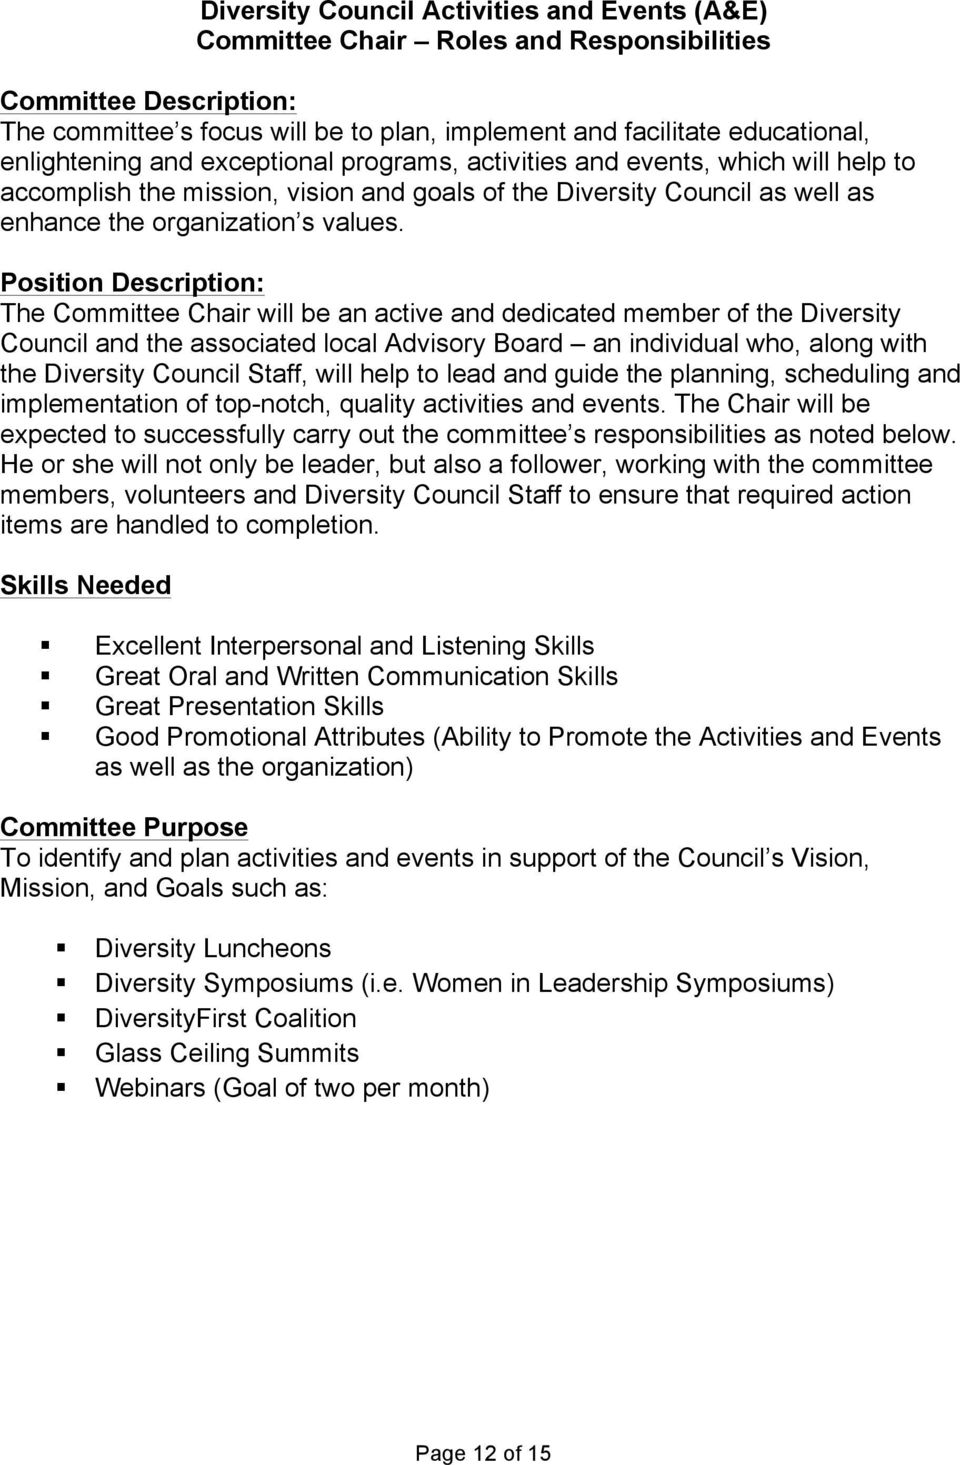 Position Description: The Committee Chair will be an active and dedicated member of the Diversity Council and the associated local Advisory Board an individual who, along with the Diversity Council